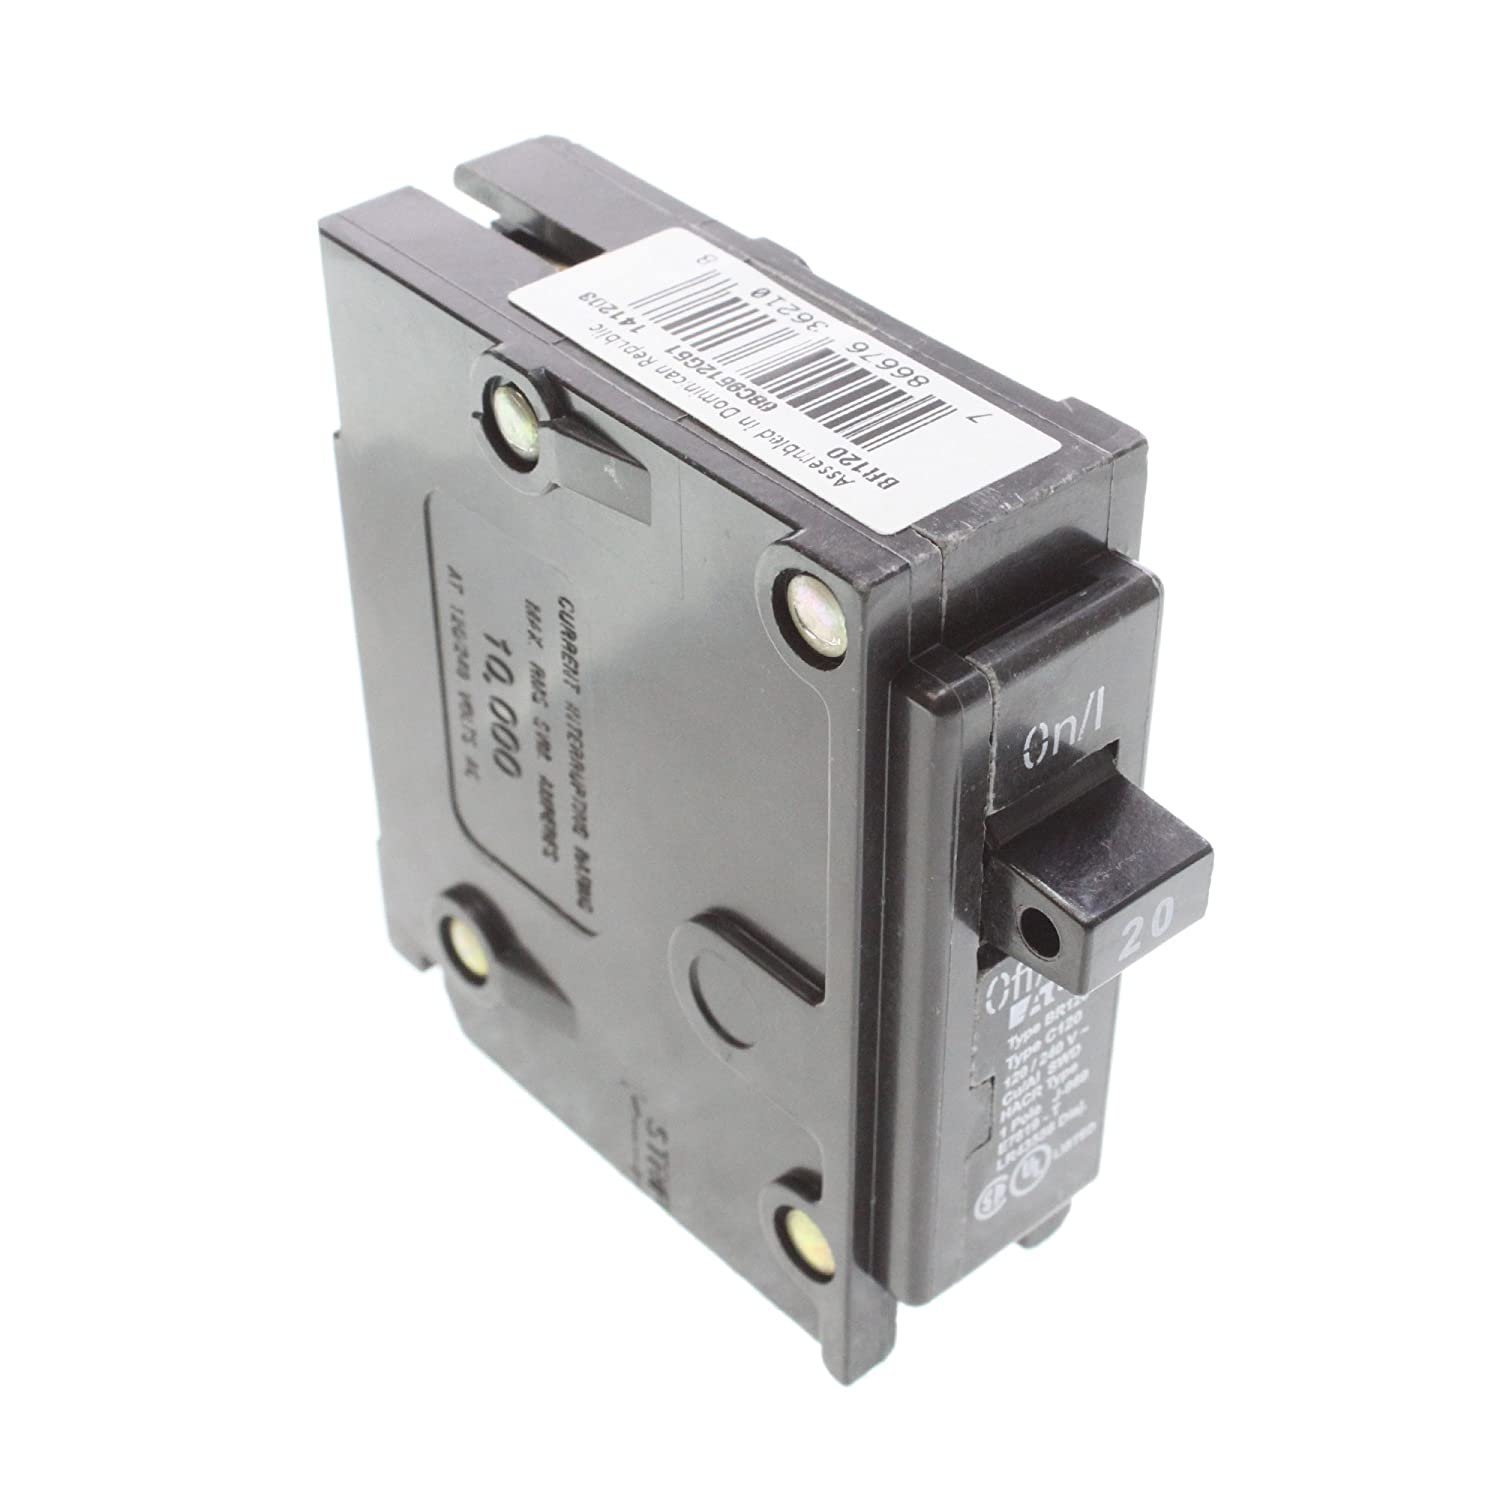 NEW LOT OF 2 CUTLER HAMMER CIRCUIT BREAKER BR120 20A 20 A AMP 1 POLE 120//240 VAC